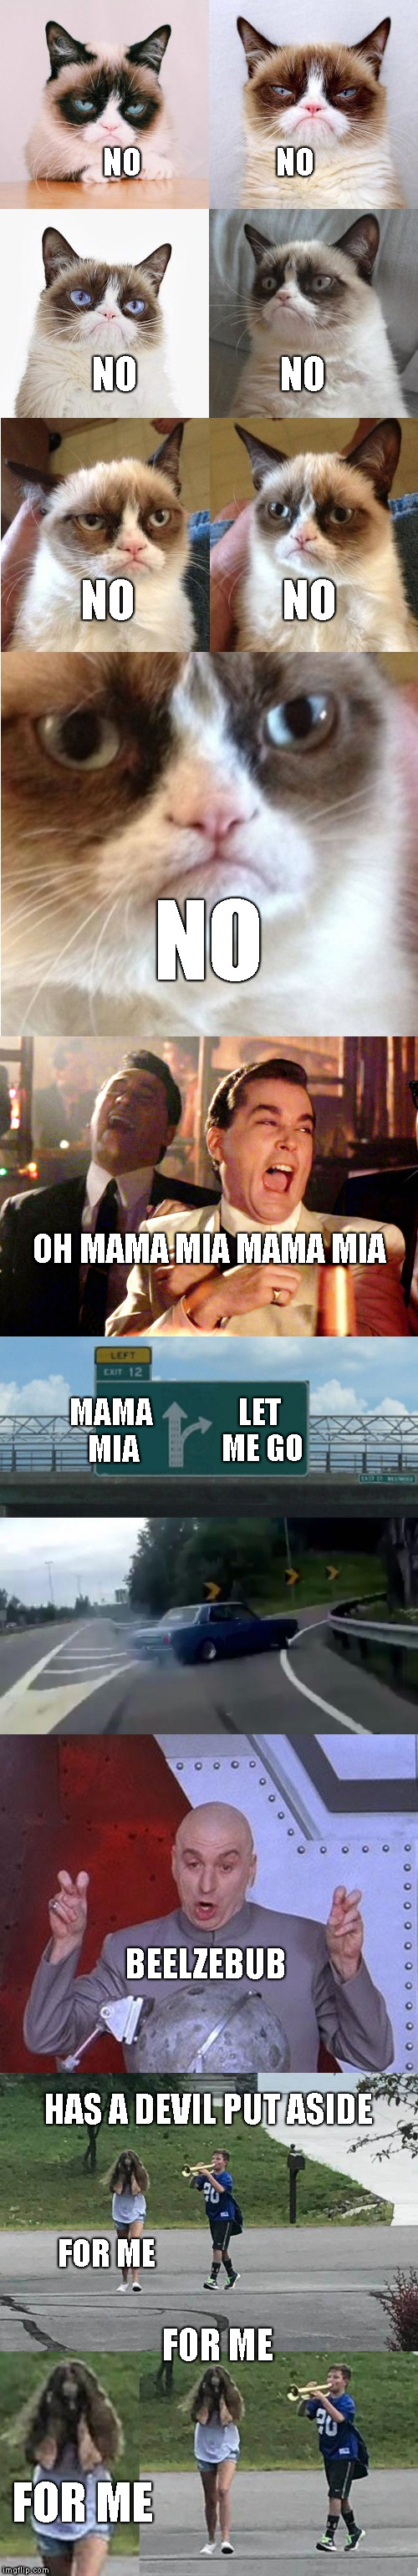 Queen Bohemian Rhapsody Chorus 2b | NO                       NO FOR ME NO                   NO NO                NO NO MAMA MIA LET ME GO BEELZEBUB HAS A DEVIL PUT ASIDE FOR ME | image tagged in memes,song lyrics,queen,bohemian rhapsody | made w/ Imgflip meme maker